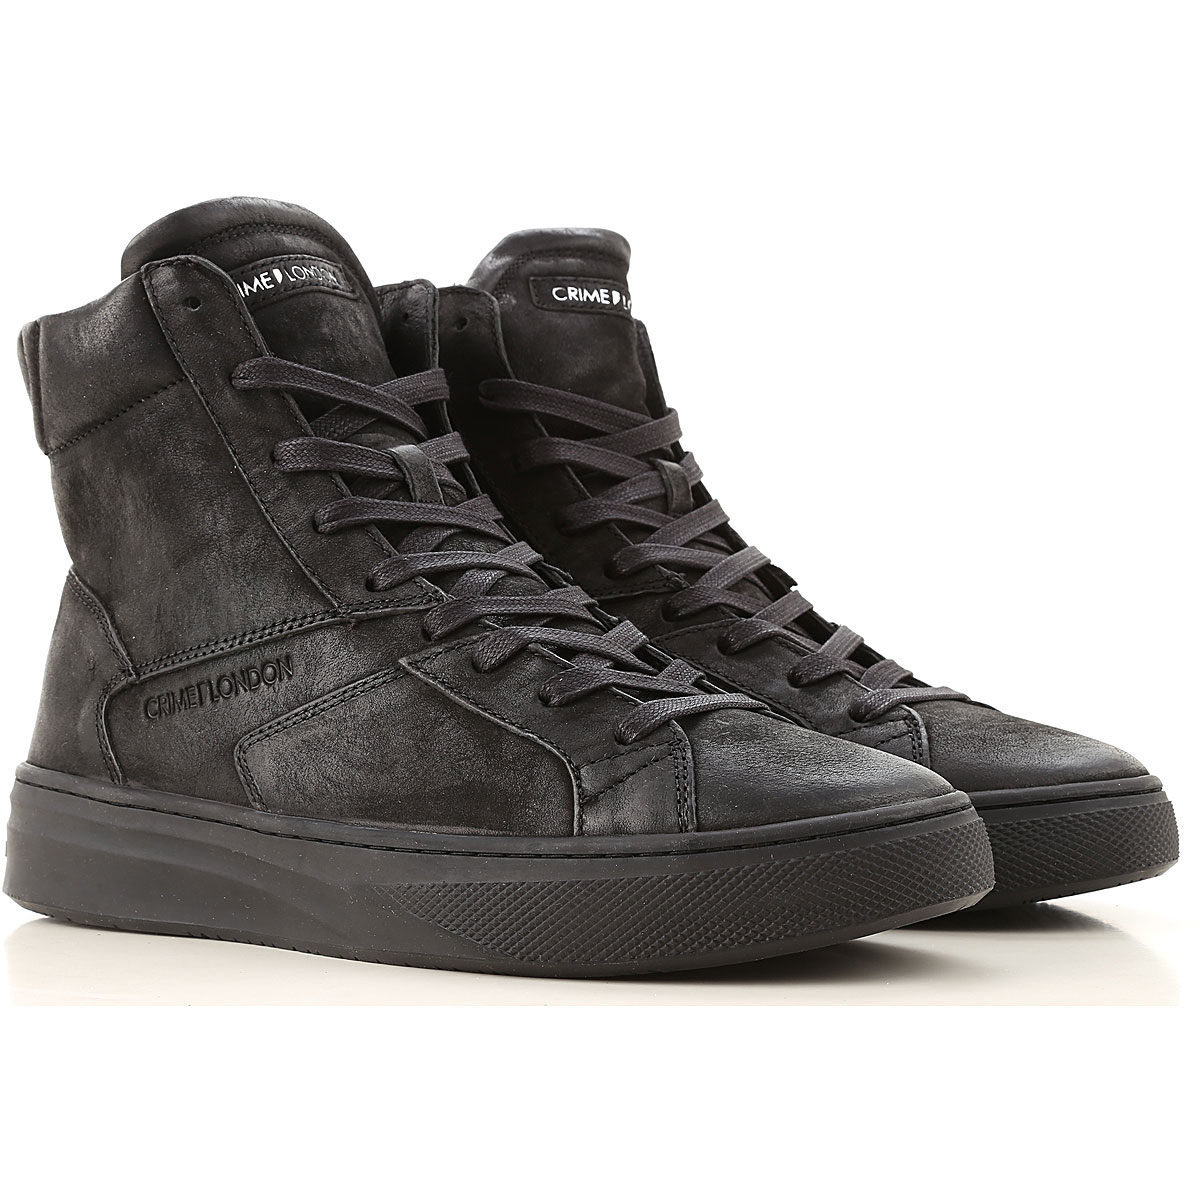 Crime Sneakers for Men On Sale, Black, Leather, 2019, 10 10.5 7.5 8 9